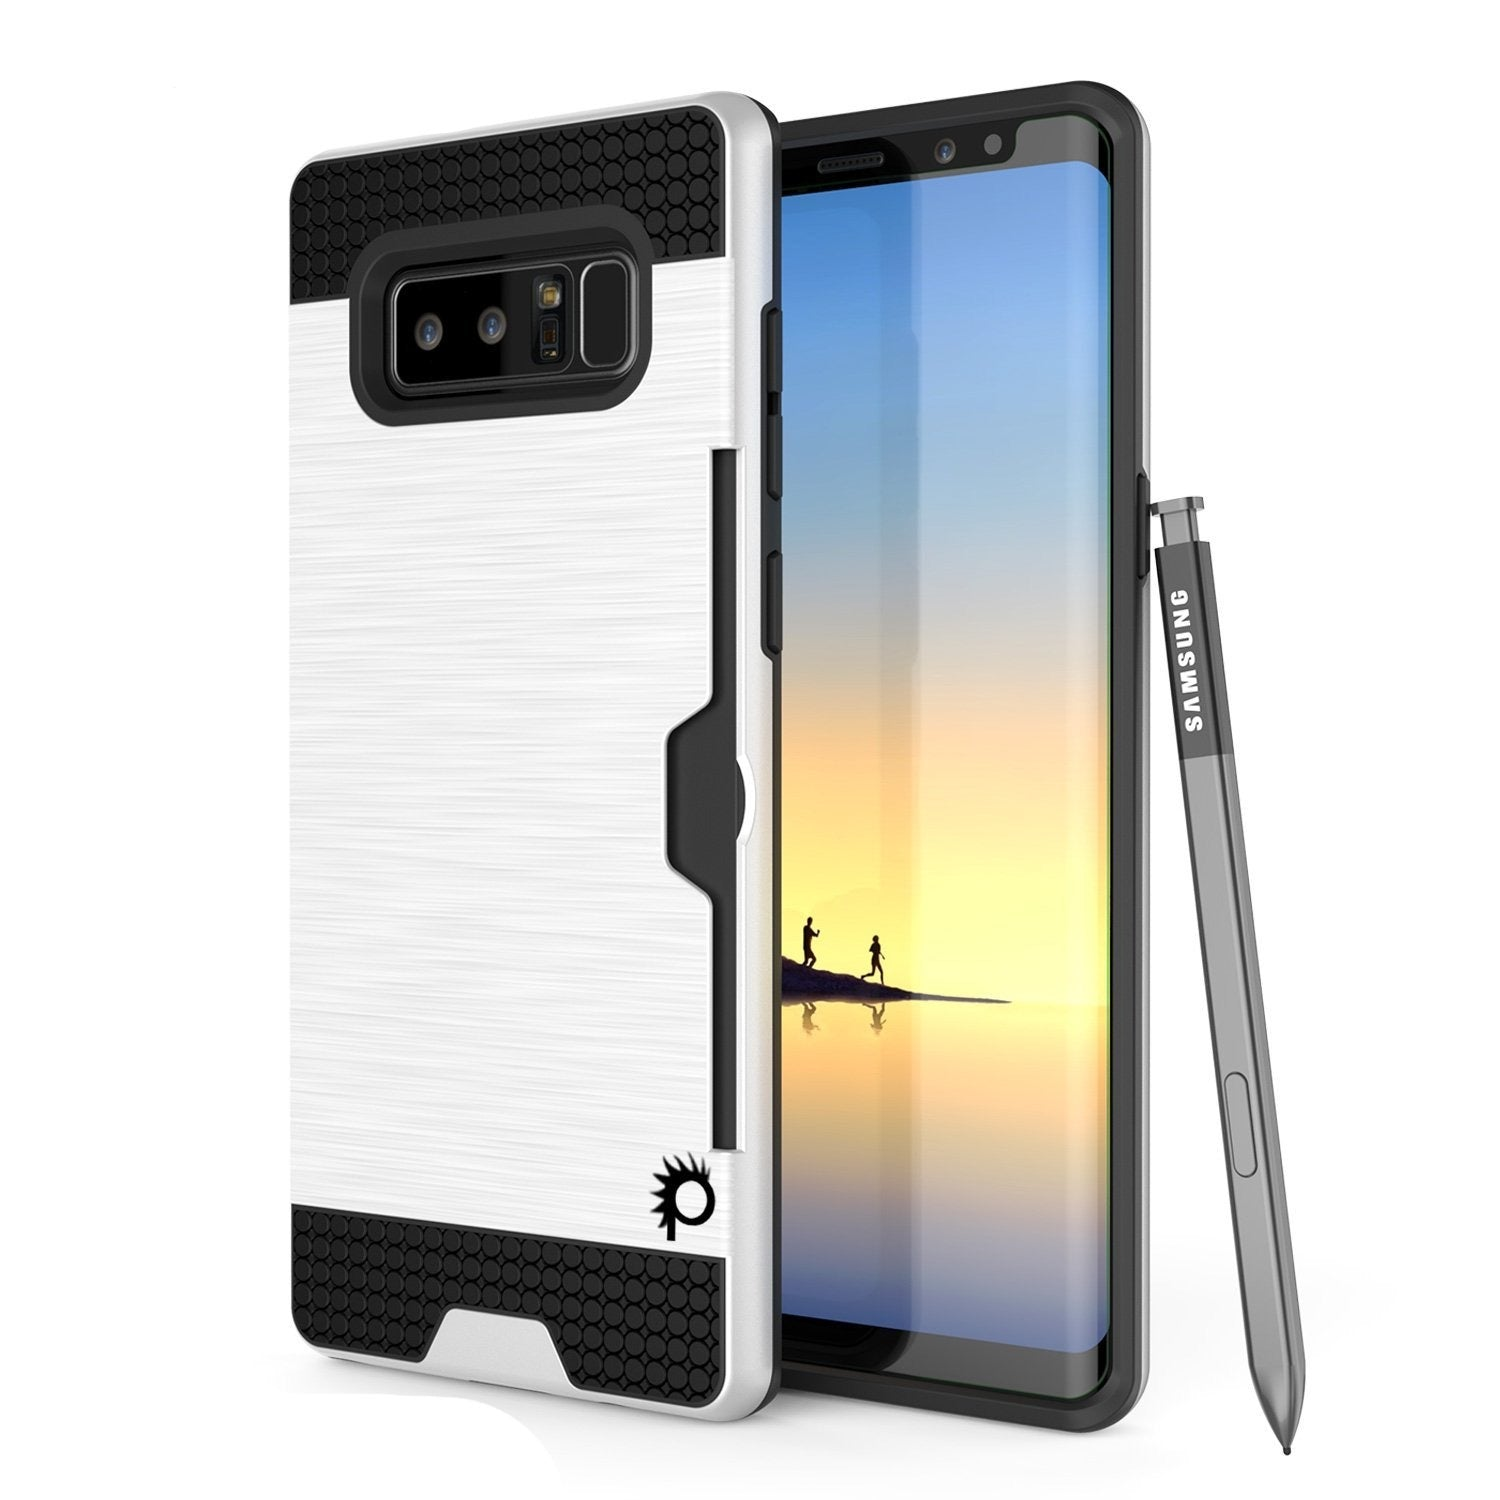 Galaxy Note 8 Dual-Layer Ultra Screen Protector Case W/ Card Slot [WHITE]